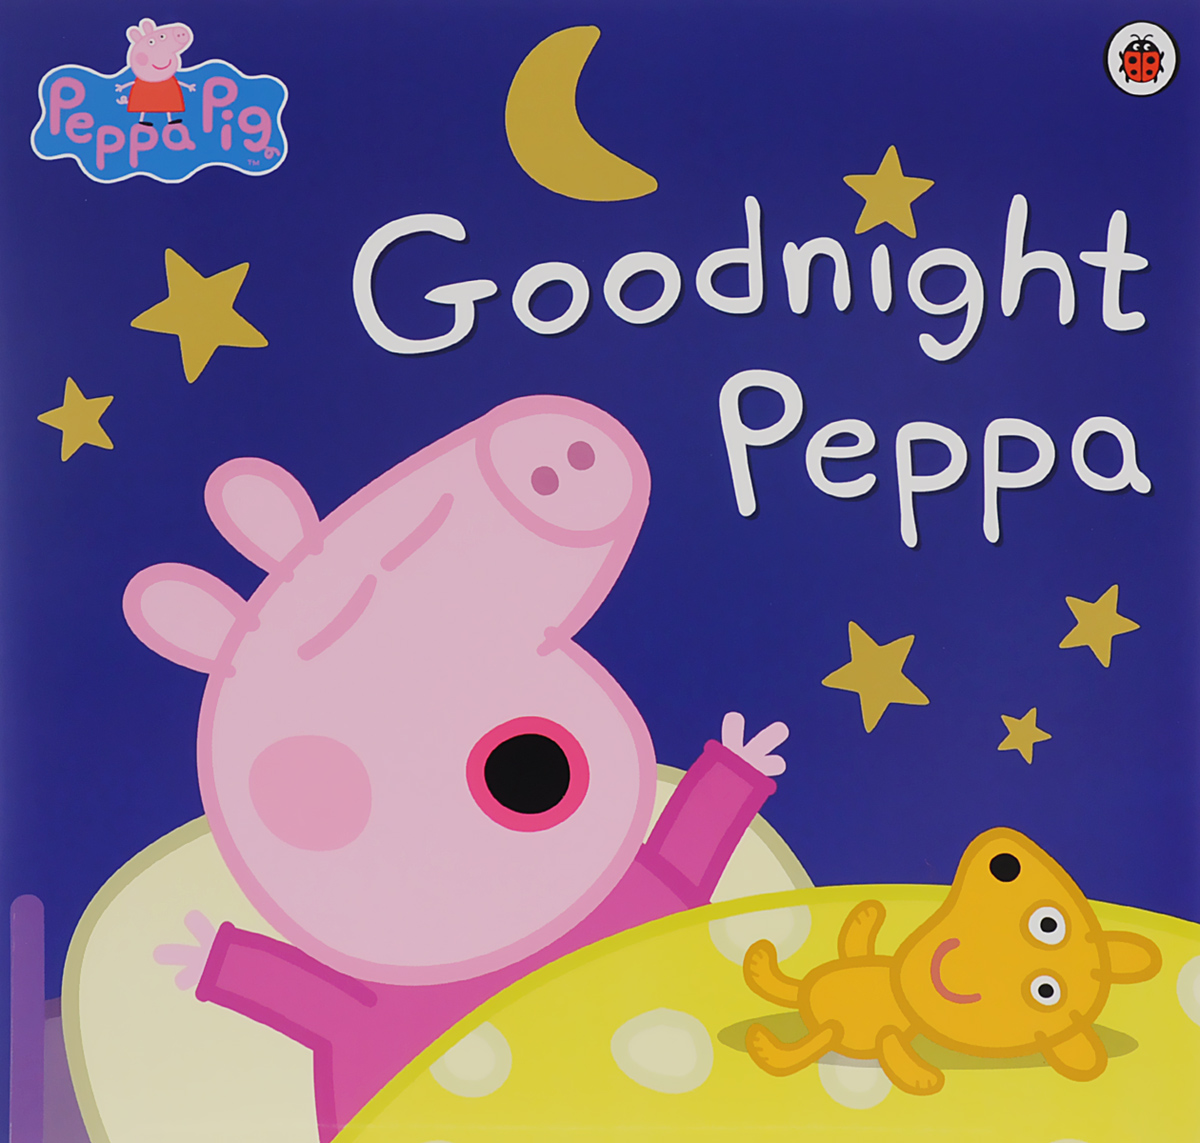 Peppa Pig: Goodnight Peppa peppa pig daddy